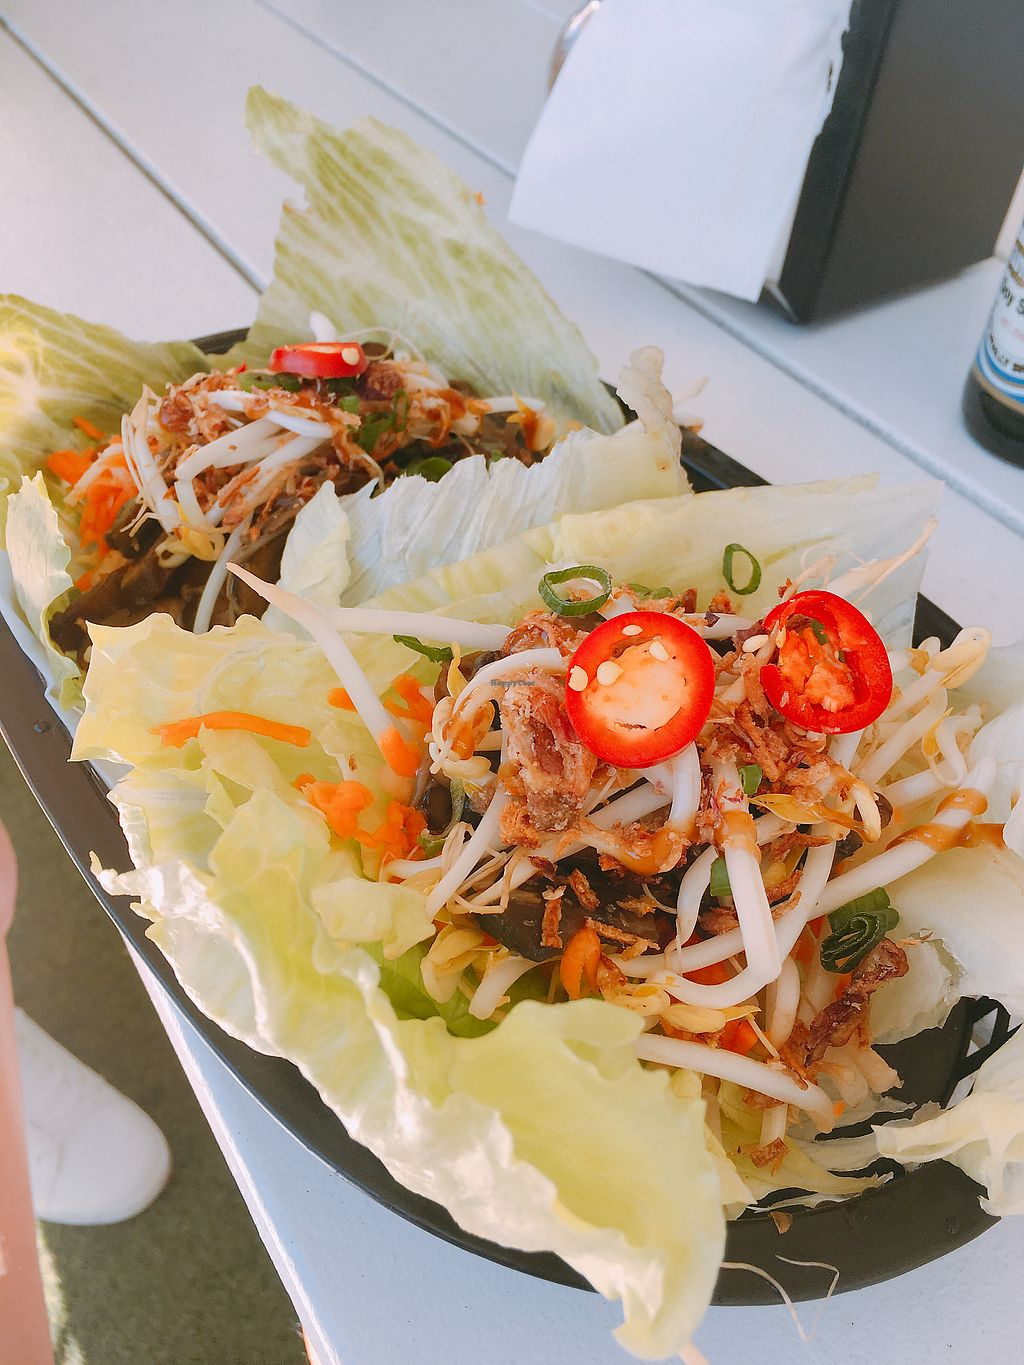 """Photo of Quay Canteen  by <a href=""""/members/profile/VinnieHTHoang"""">VinnieHTHoang</a> <br/>Mushroom filled San choy bow  <br/> September 8, 2017  - <a href='/contact/abuse/image/89516/301958'>Report</a>"""